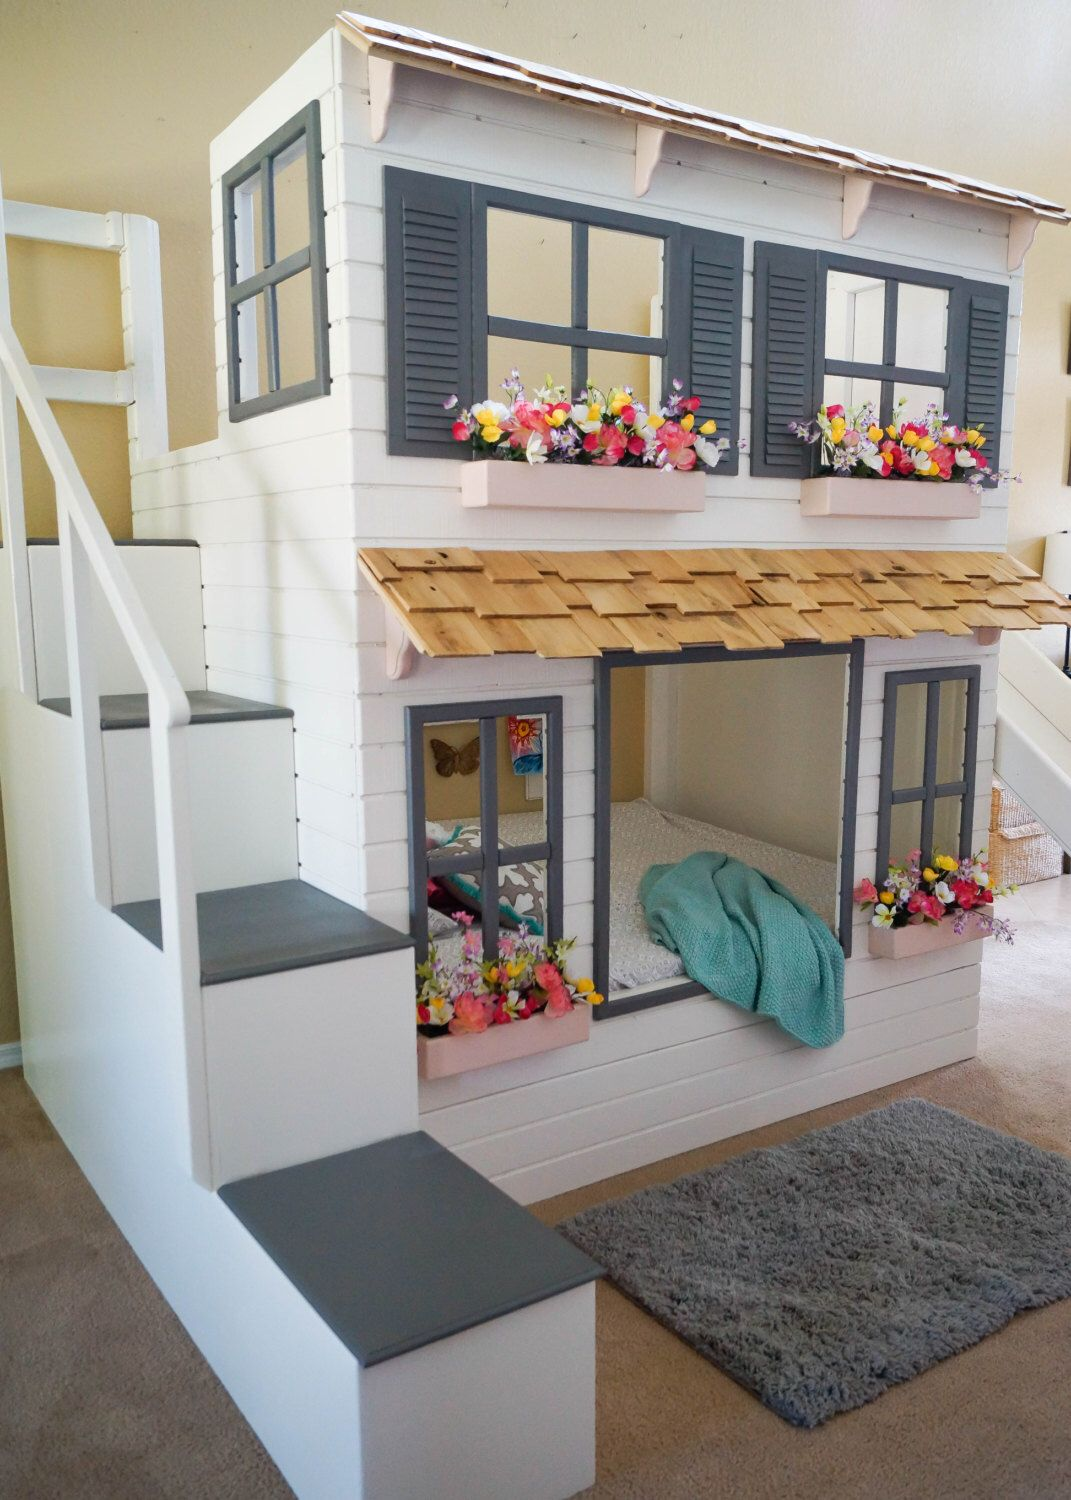 Ikea Kinderbett Mit Rutsche The Ultimate Custom Dollhouse Loft Or Bunk Bed, Trundle